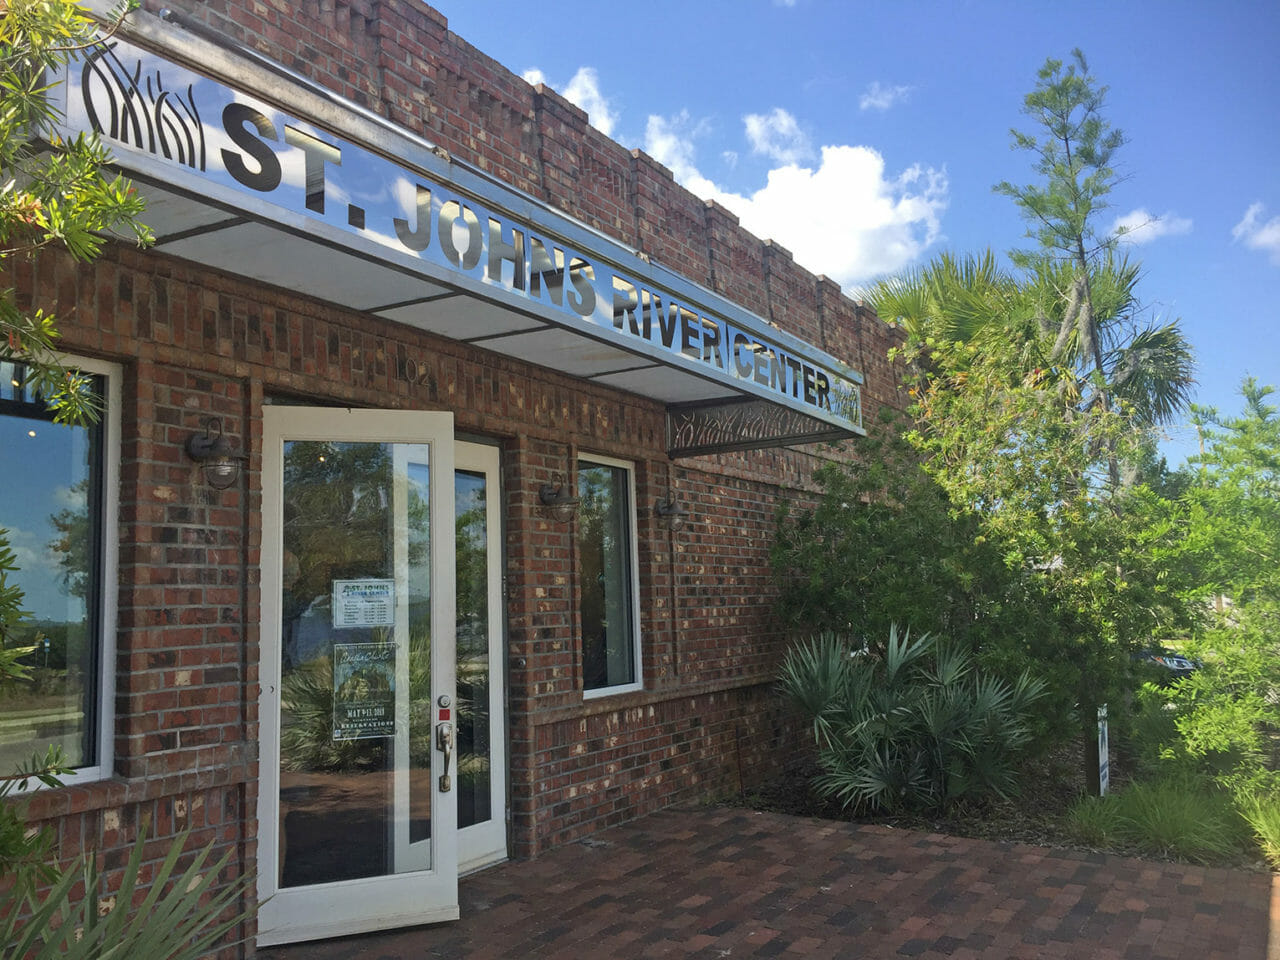 St. Johns River Center in Palatka